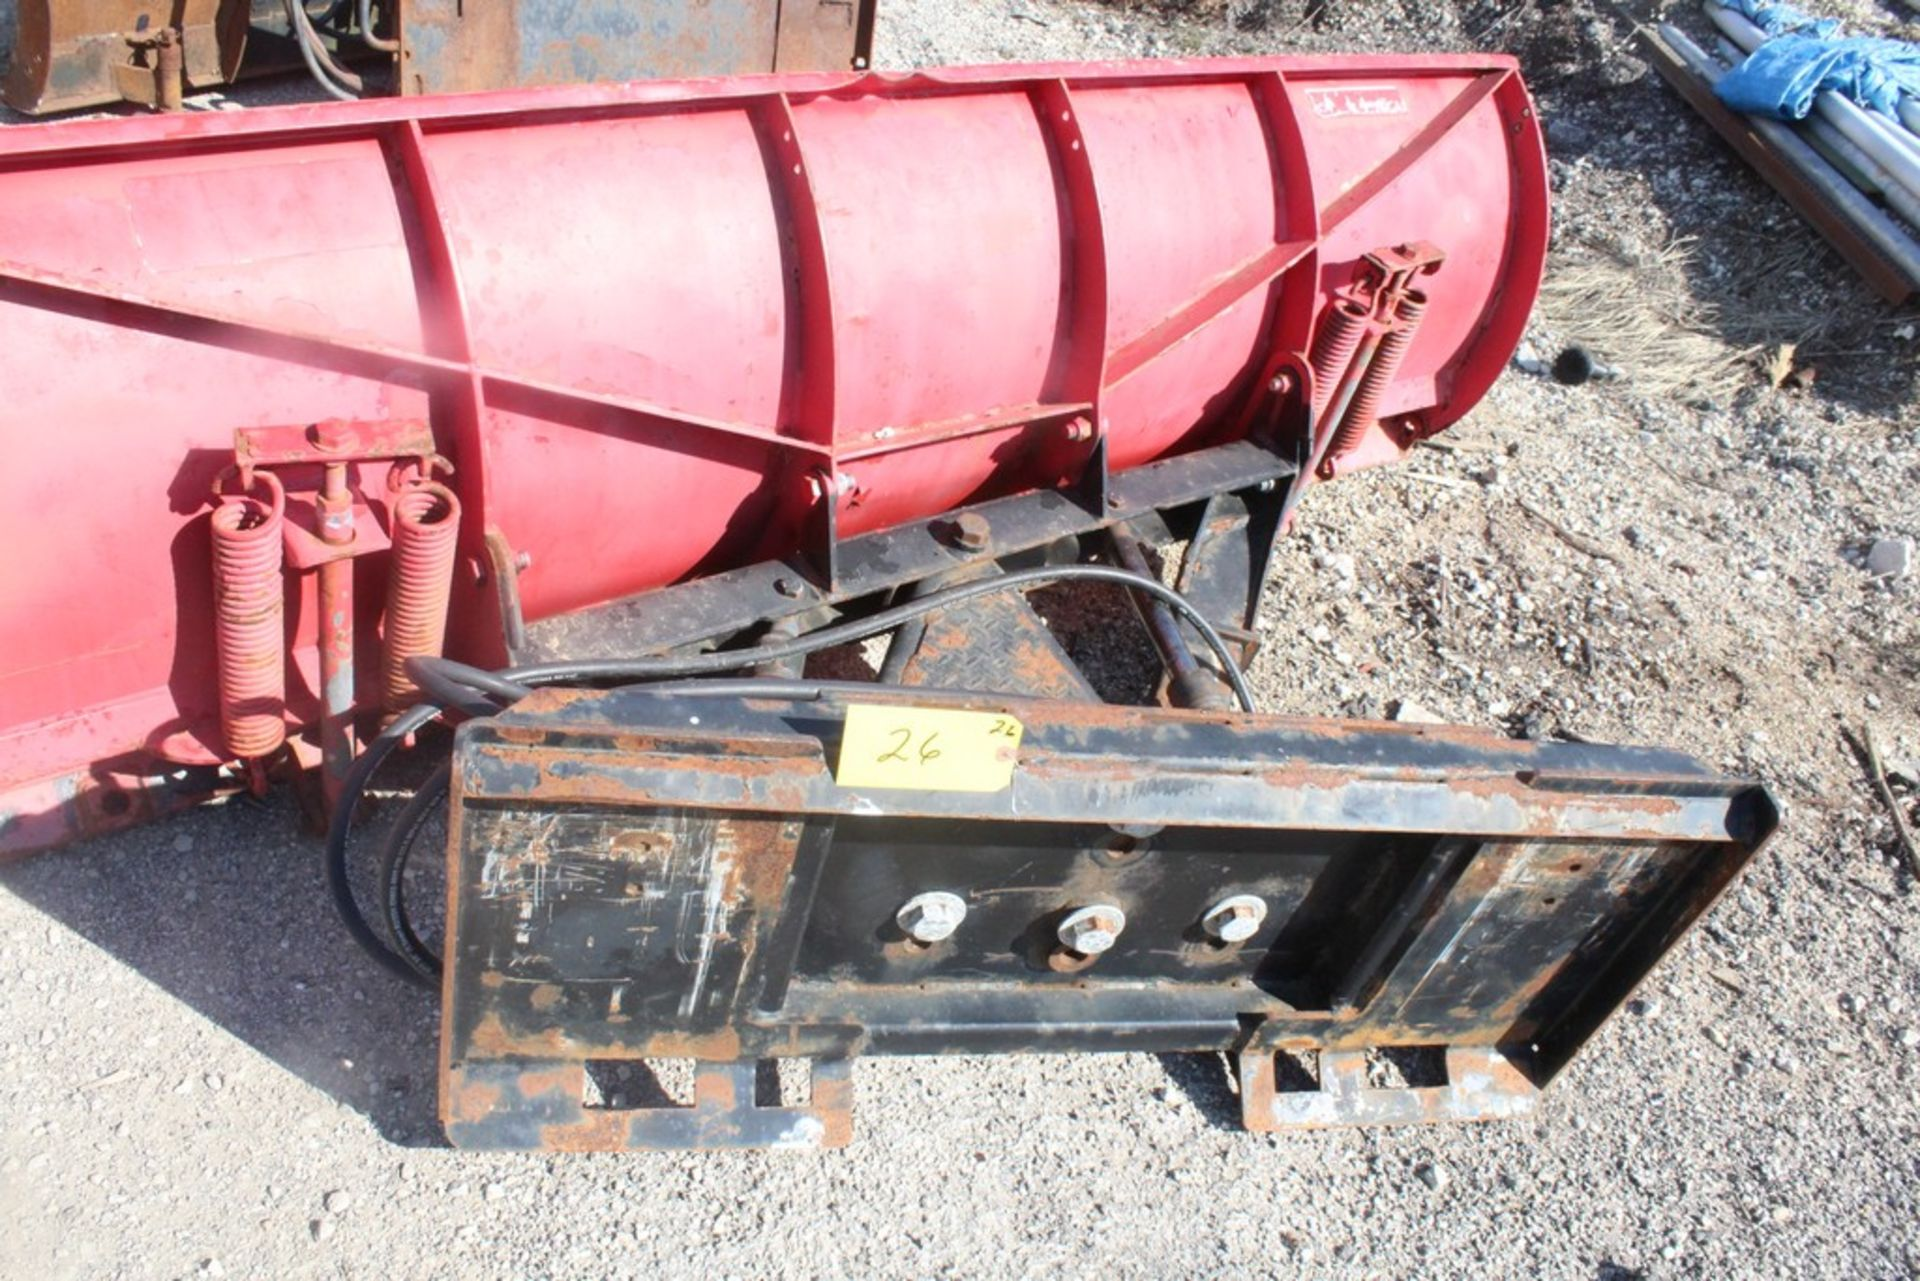 CUSTOM FABRICATED 96-IN. BOLT-TOGETHER HYDRAULIC SNOW PLOW ATTACHMENT, 96-IN. BLADE, TO FIT SKID - Image 4 of 4